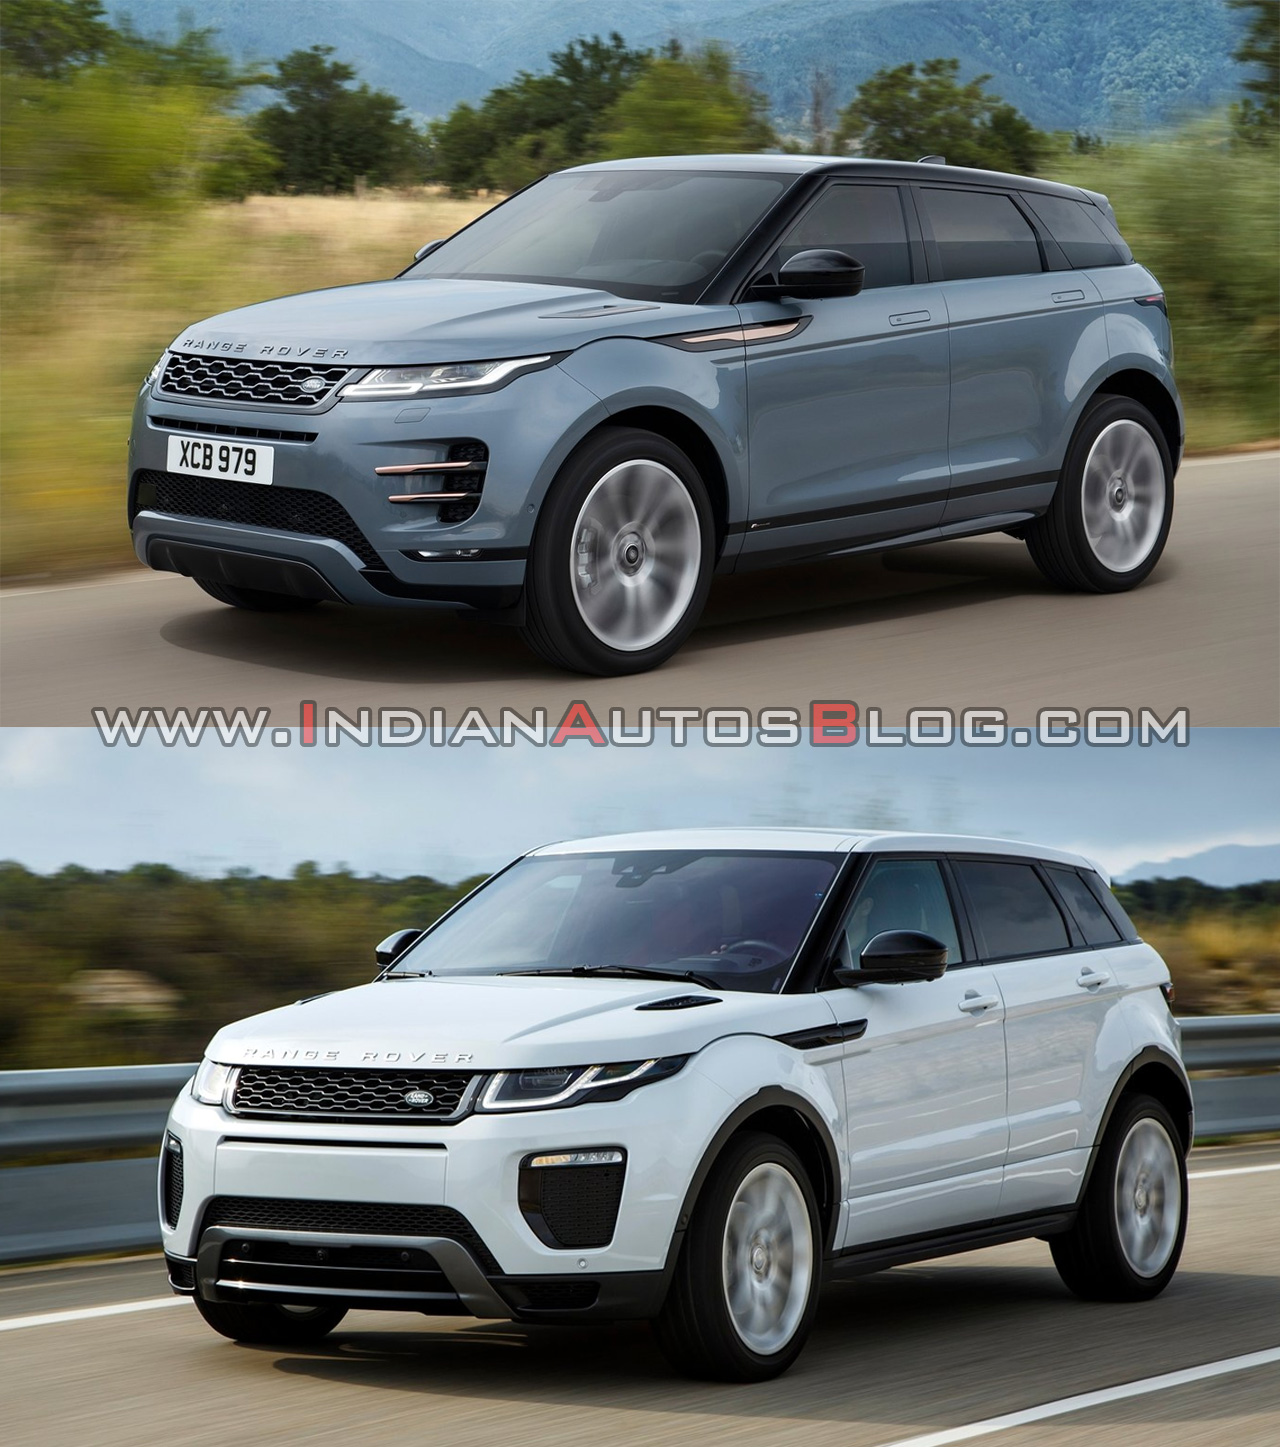 2019 range rover evoque vs 2015 range rover evoque old. Black Bedroom Furniture Sets. Home Design Ideas